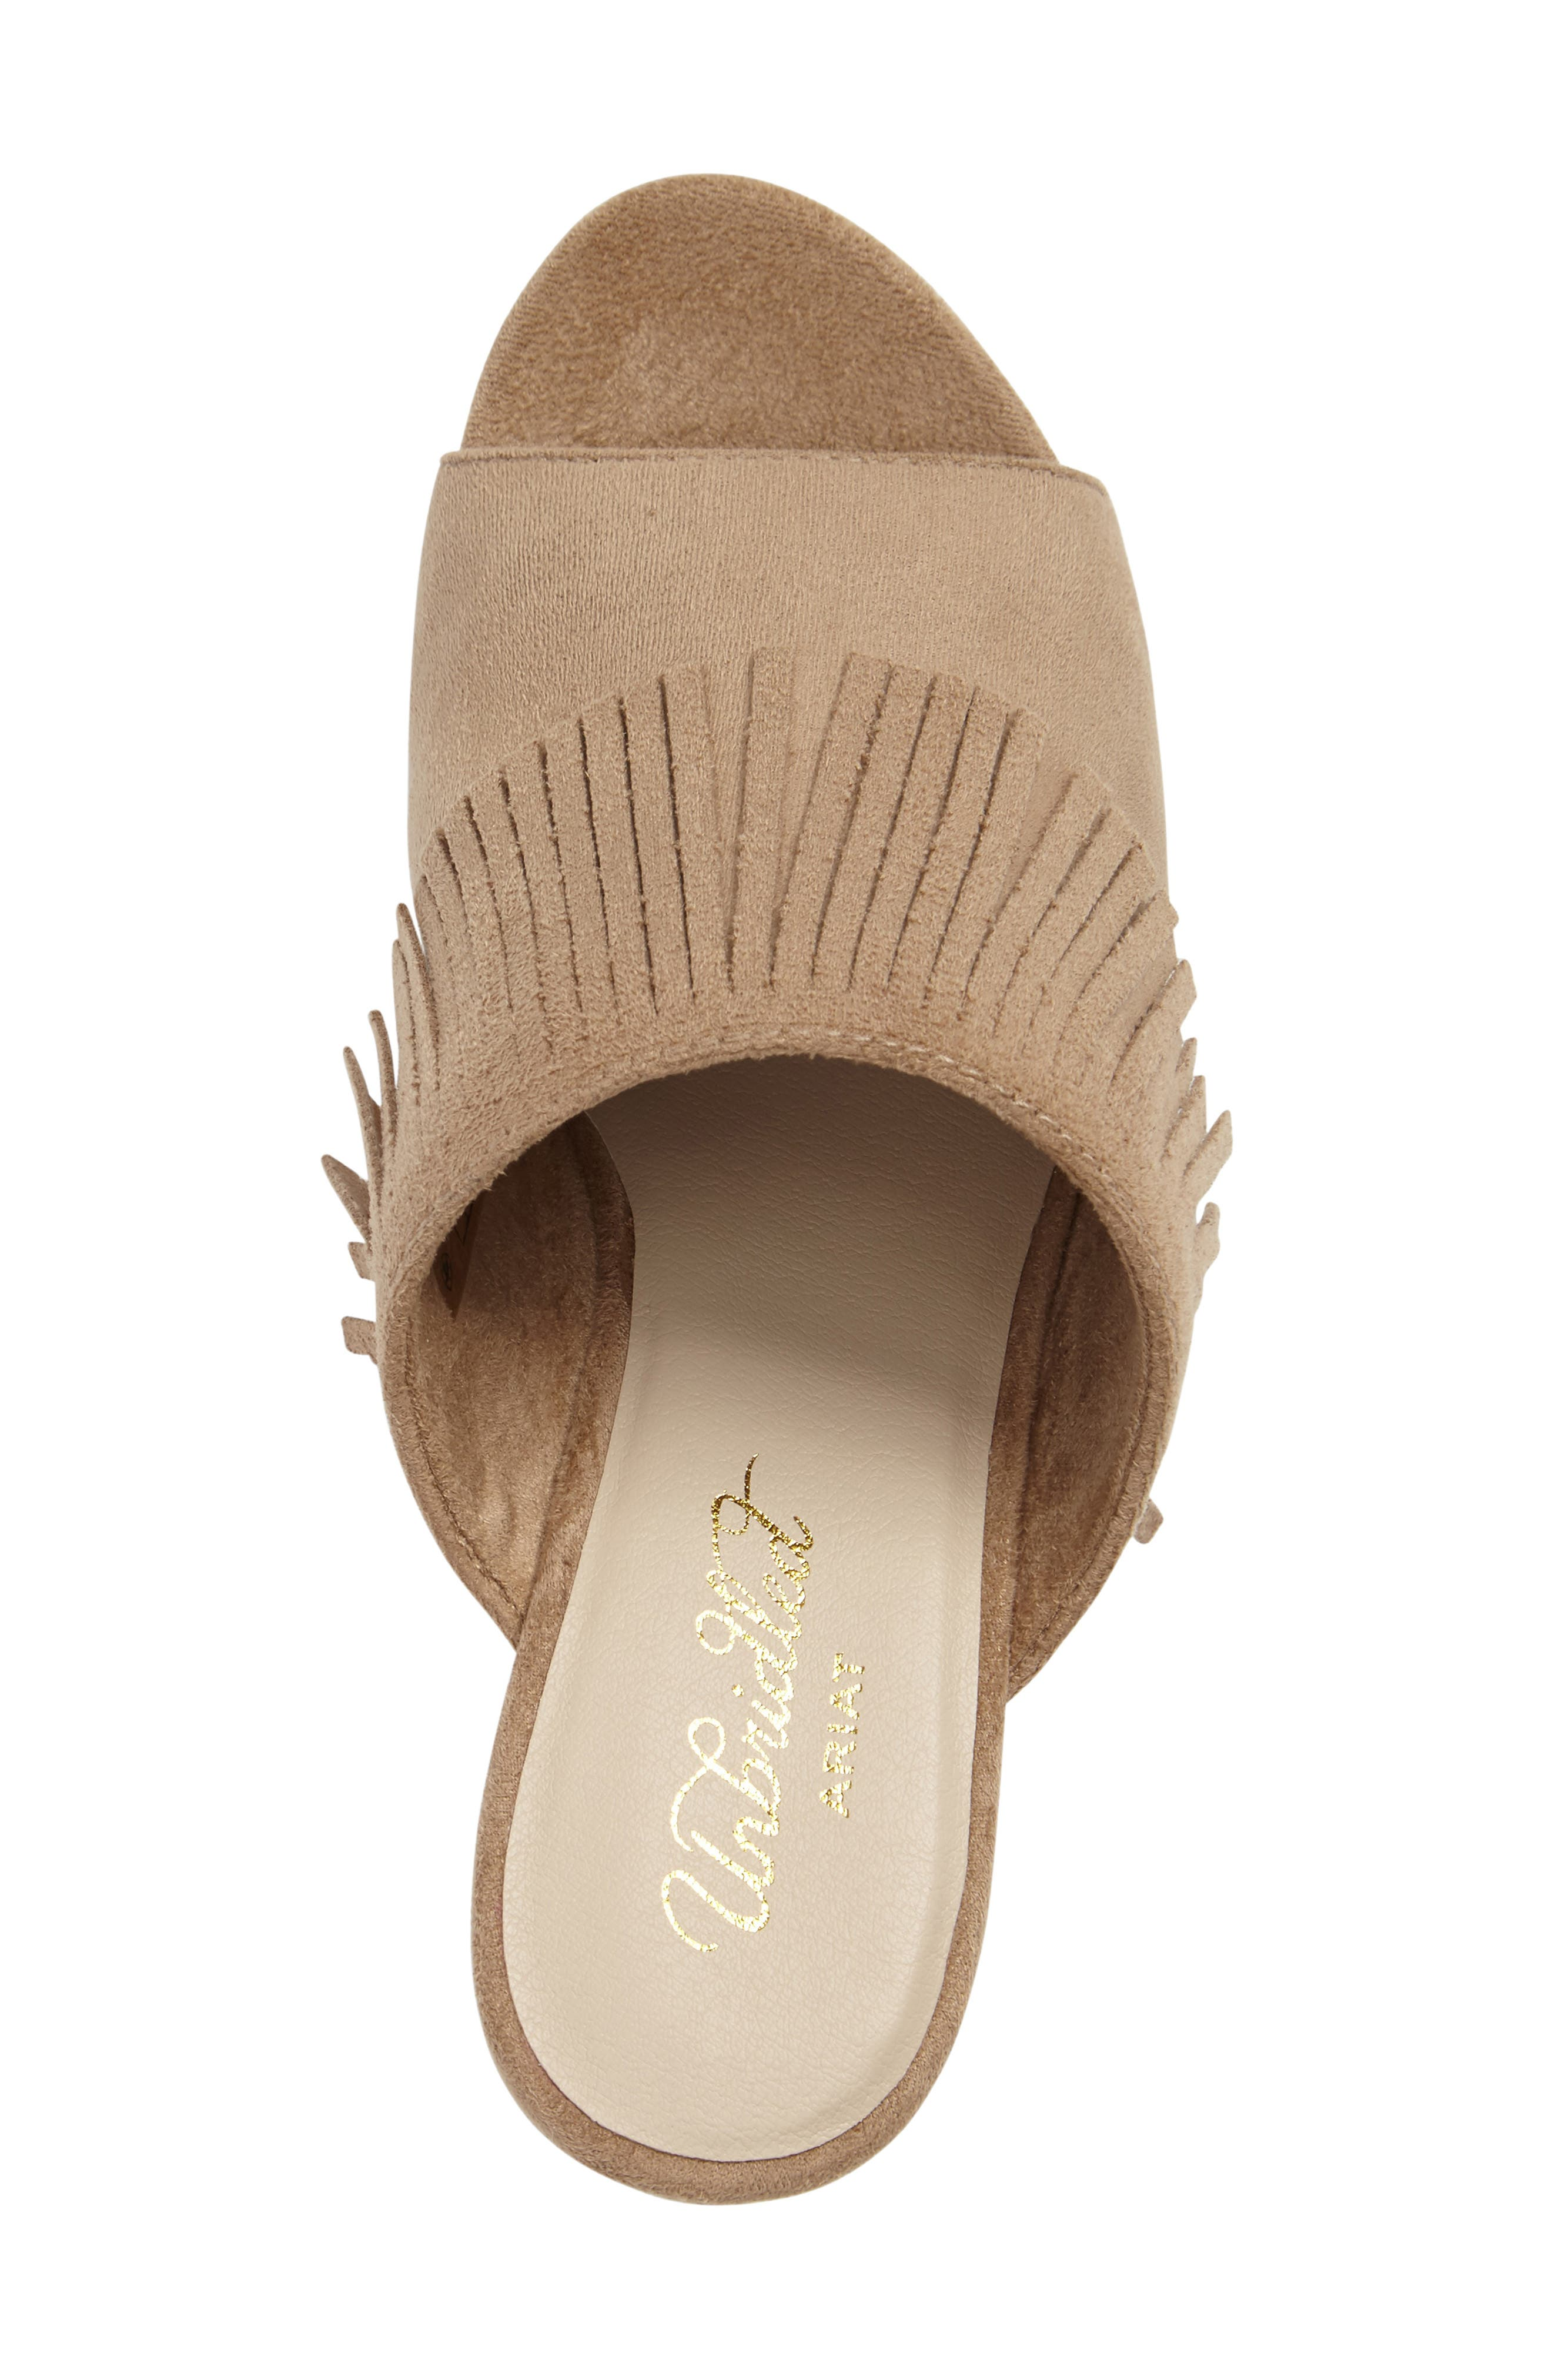 ARIAT, Unbridled Leigh Fringe Mule, Alternate thumbnail 3, color, SAND FABRIC